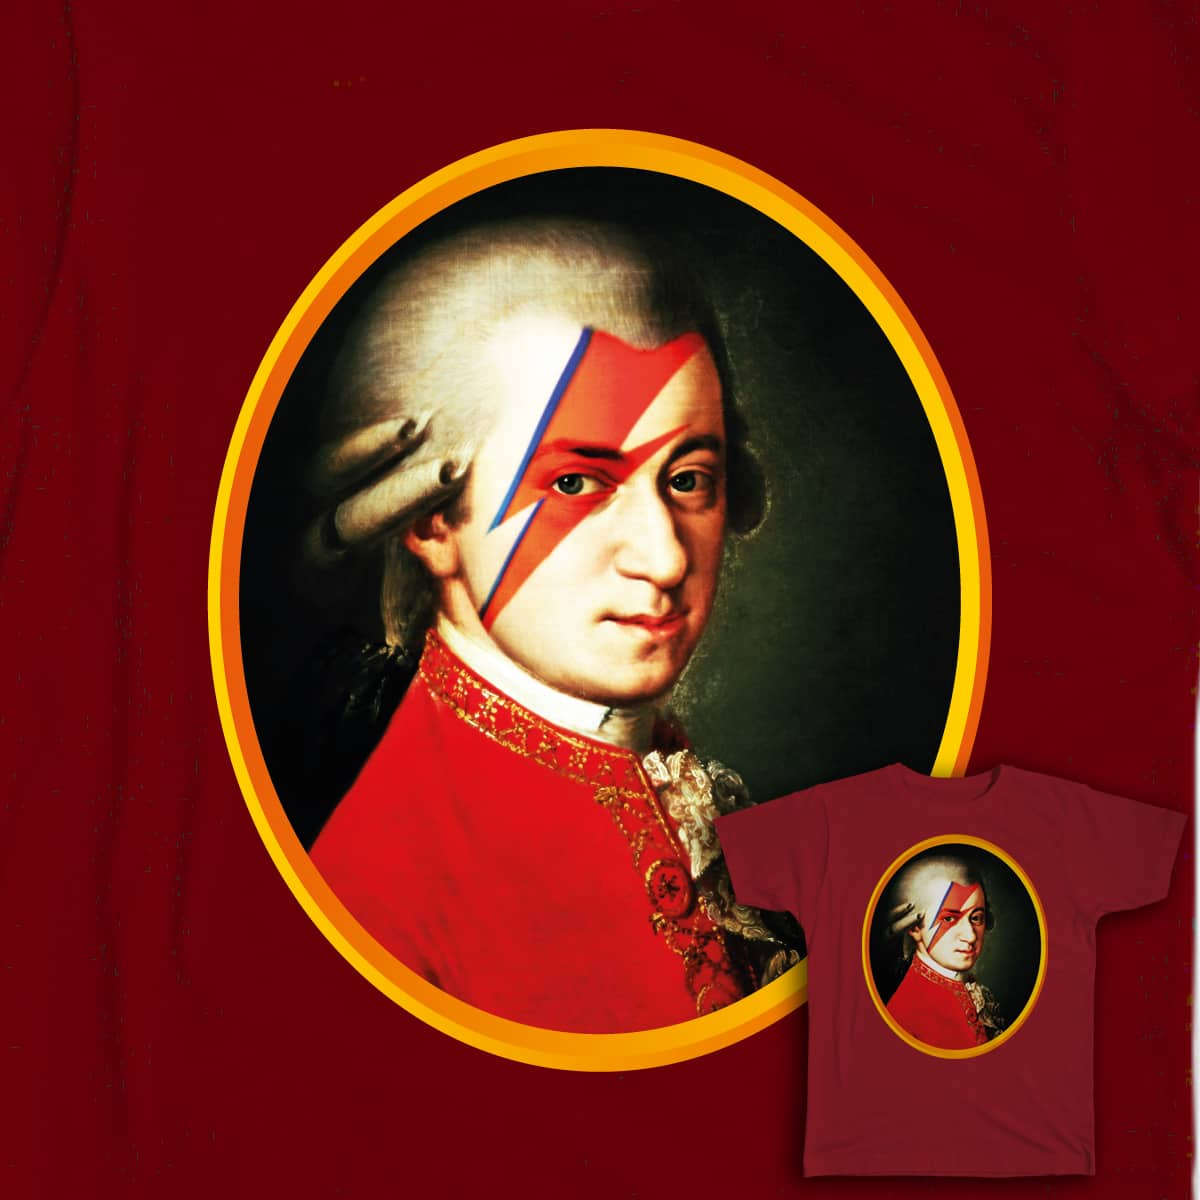 Mozart Bowie by rodalume on Threadless